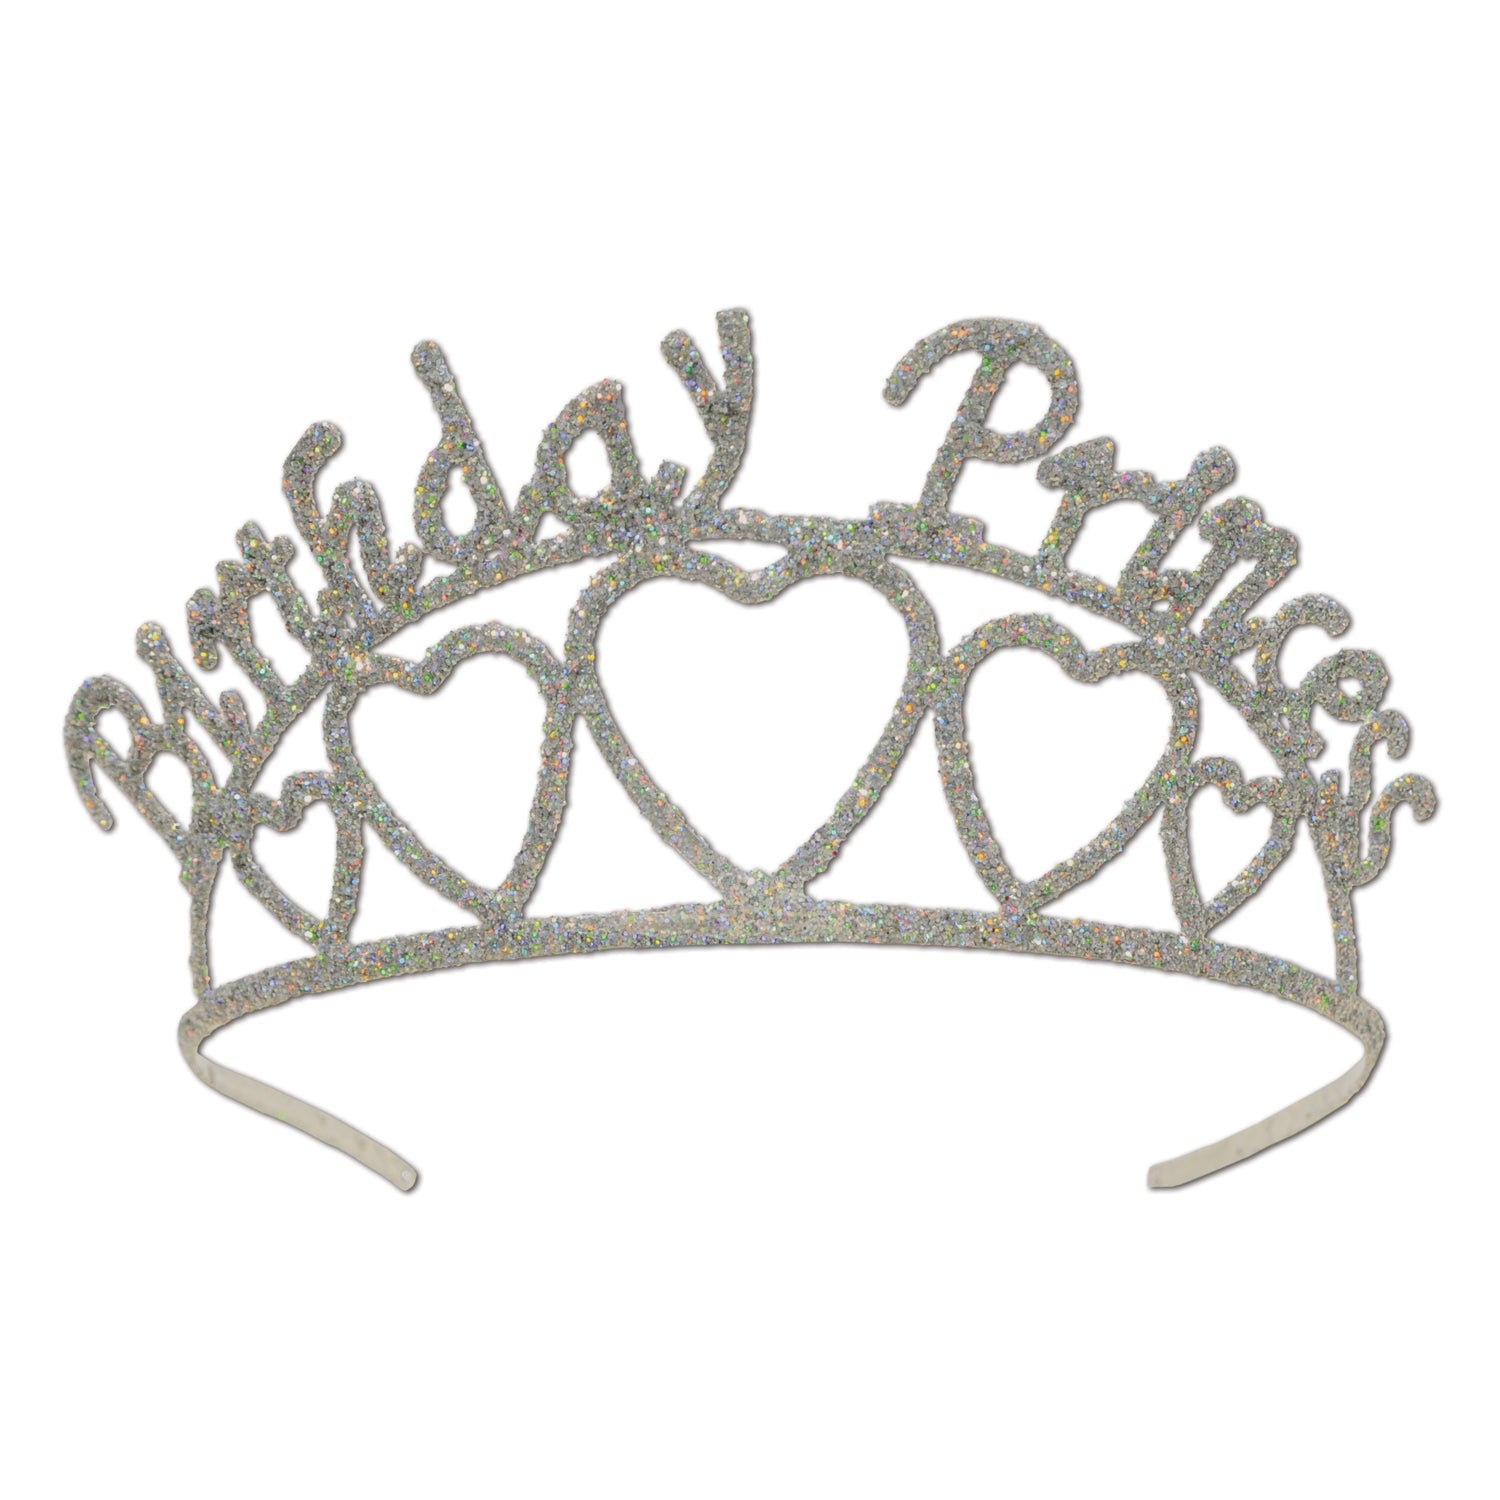 Glittered Metal Birthday Princess Tiara by Beistle - Birthday Party Supplies Decorations